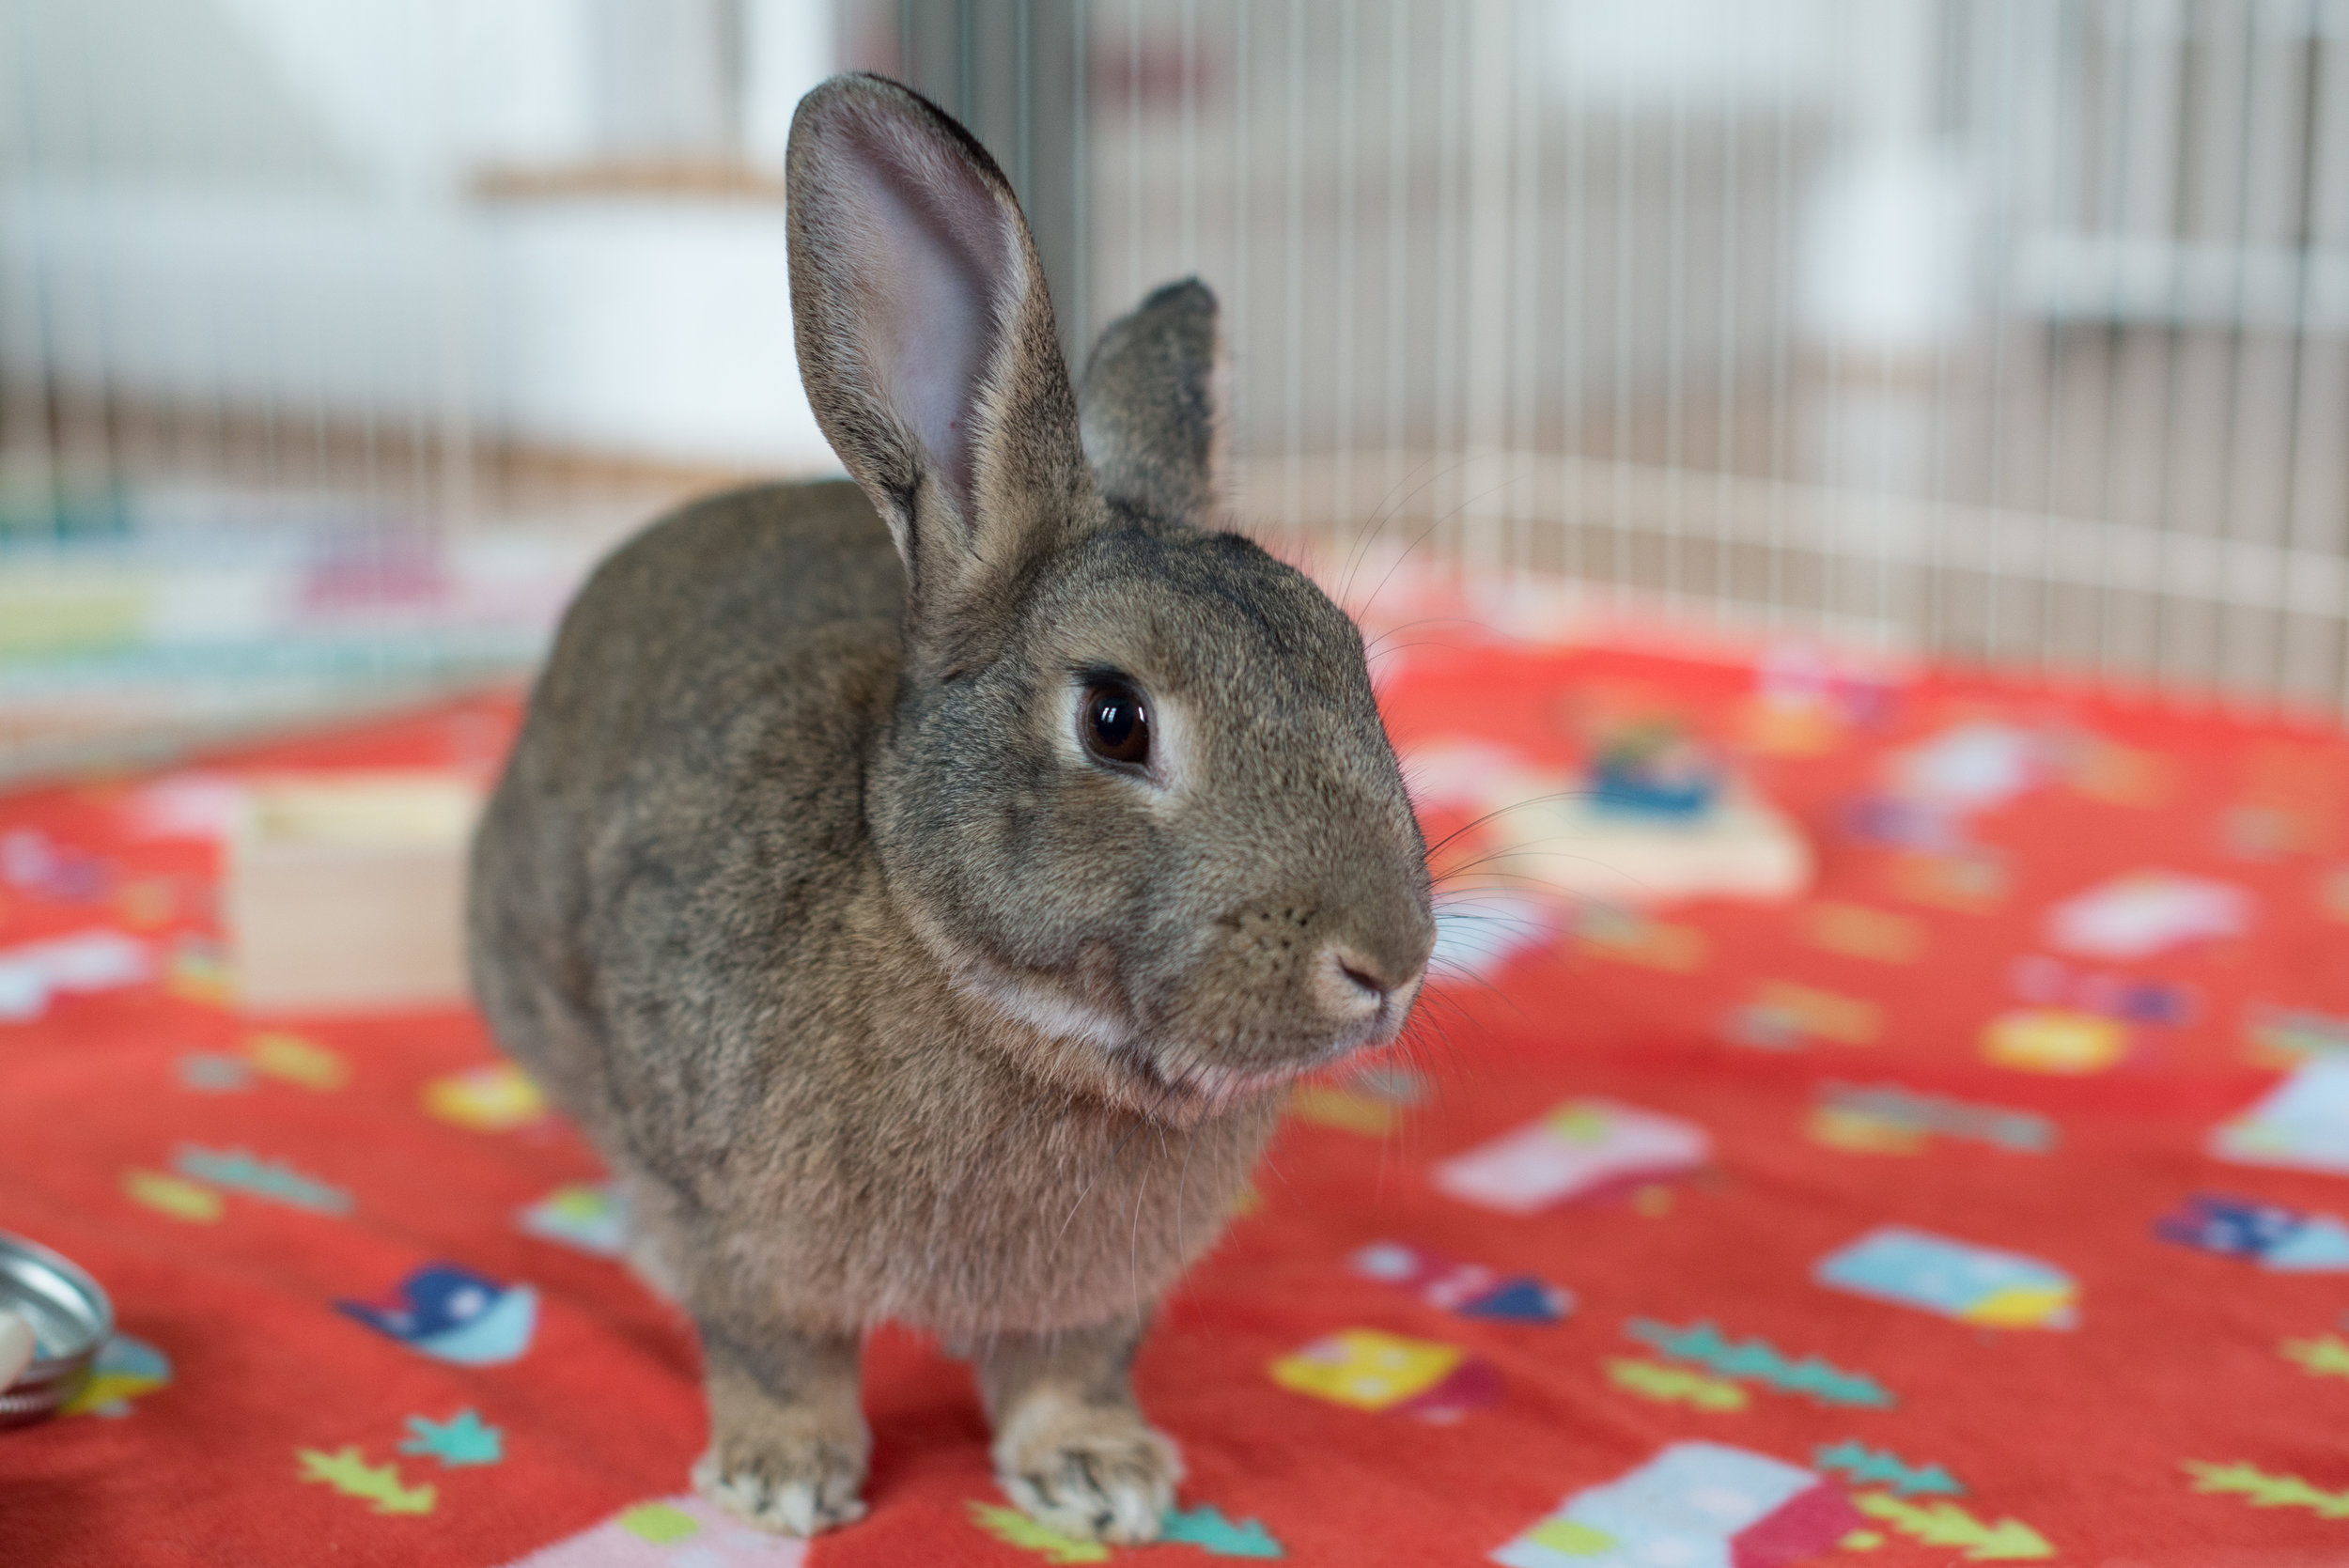 Lexi, available for adoption through Triangle Rabbits